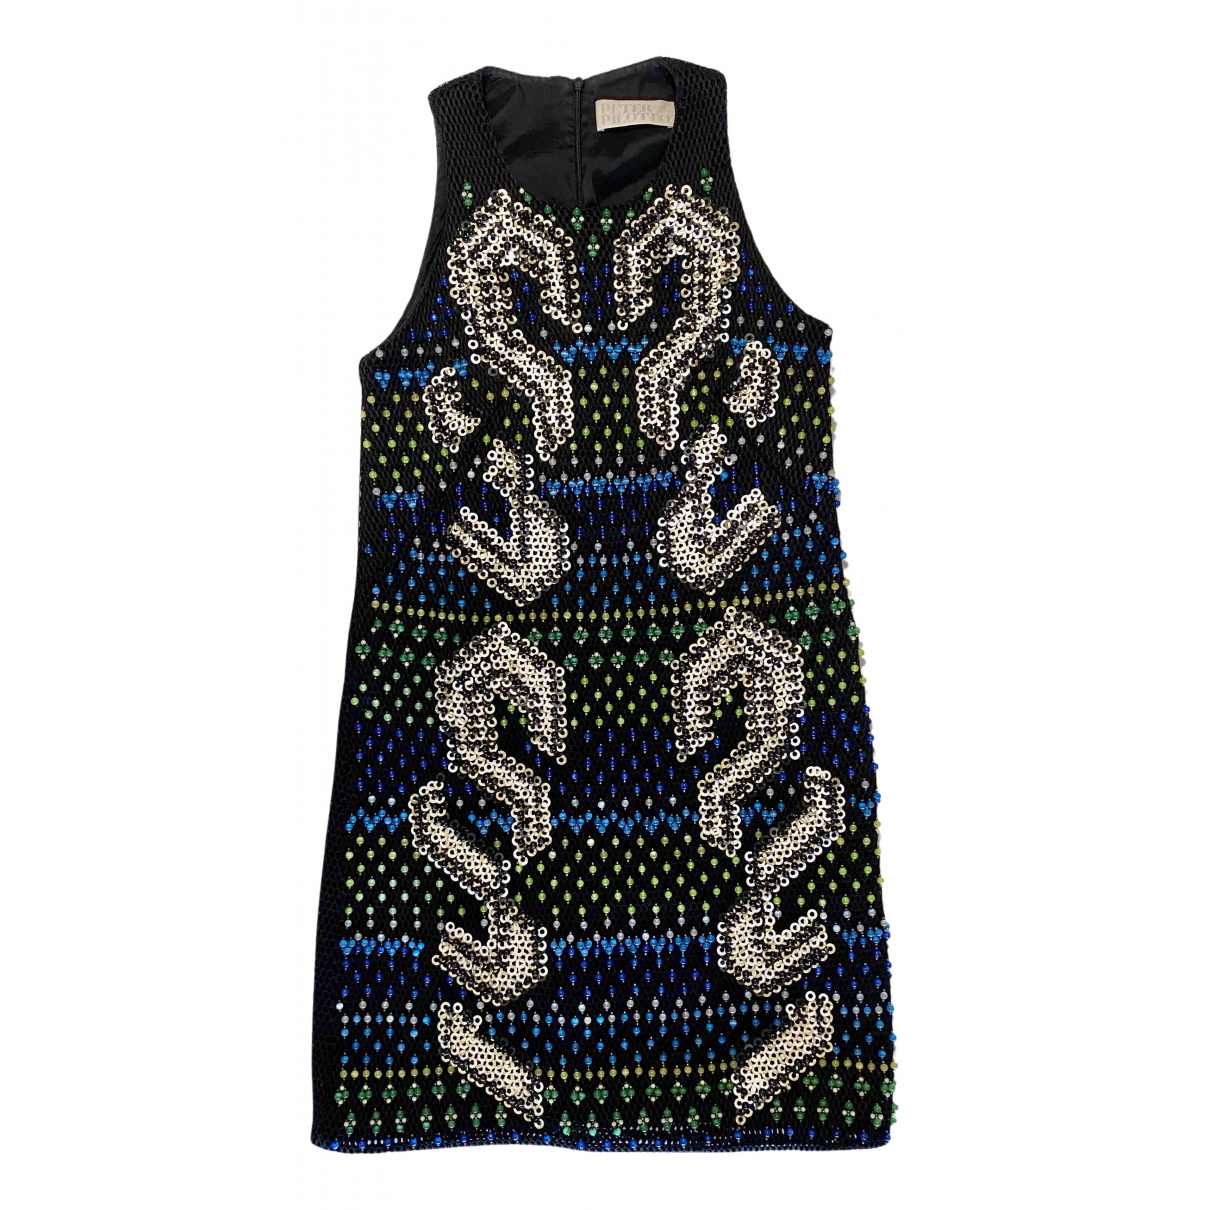 Peter Pilotto \N Kleid in  Schwarz Polyester